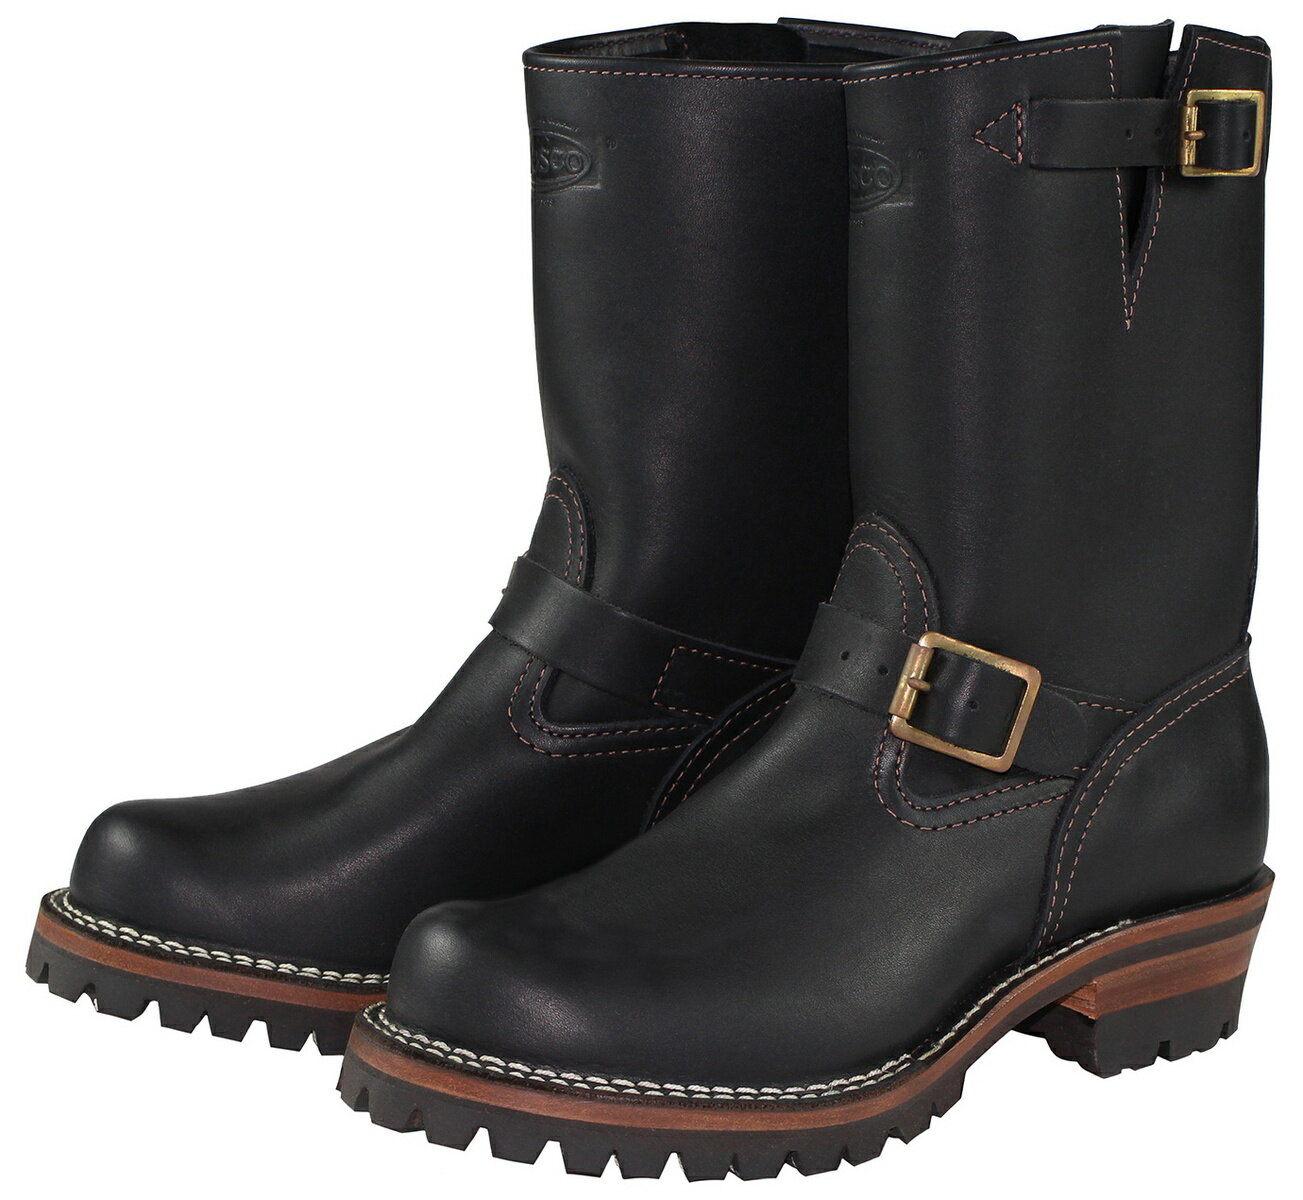 WESCO [-CUSTOM BOSS- Black size.8E,9E,10E]